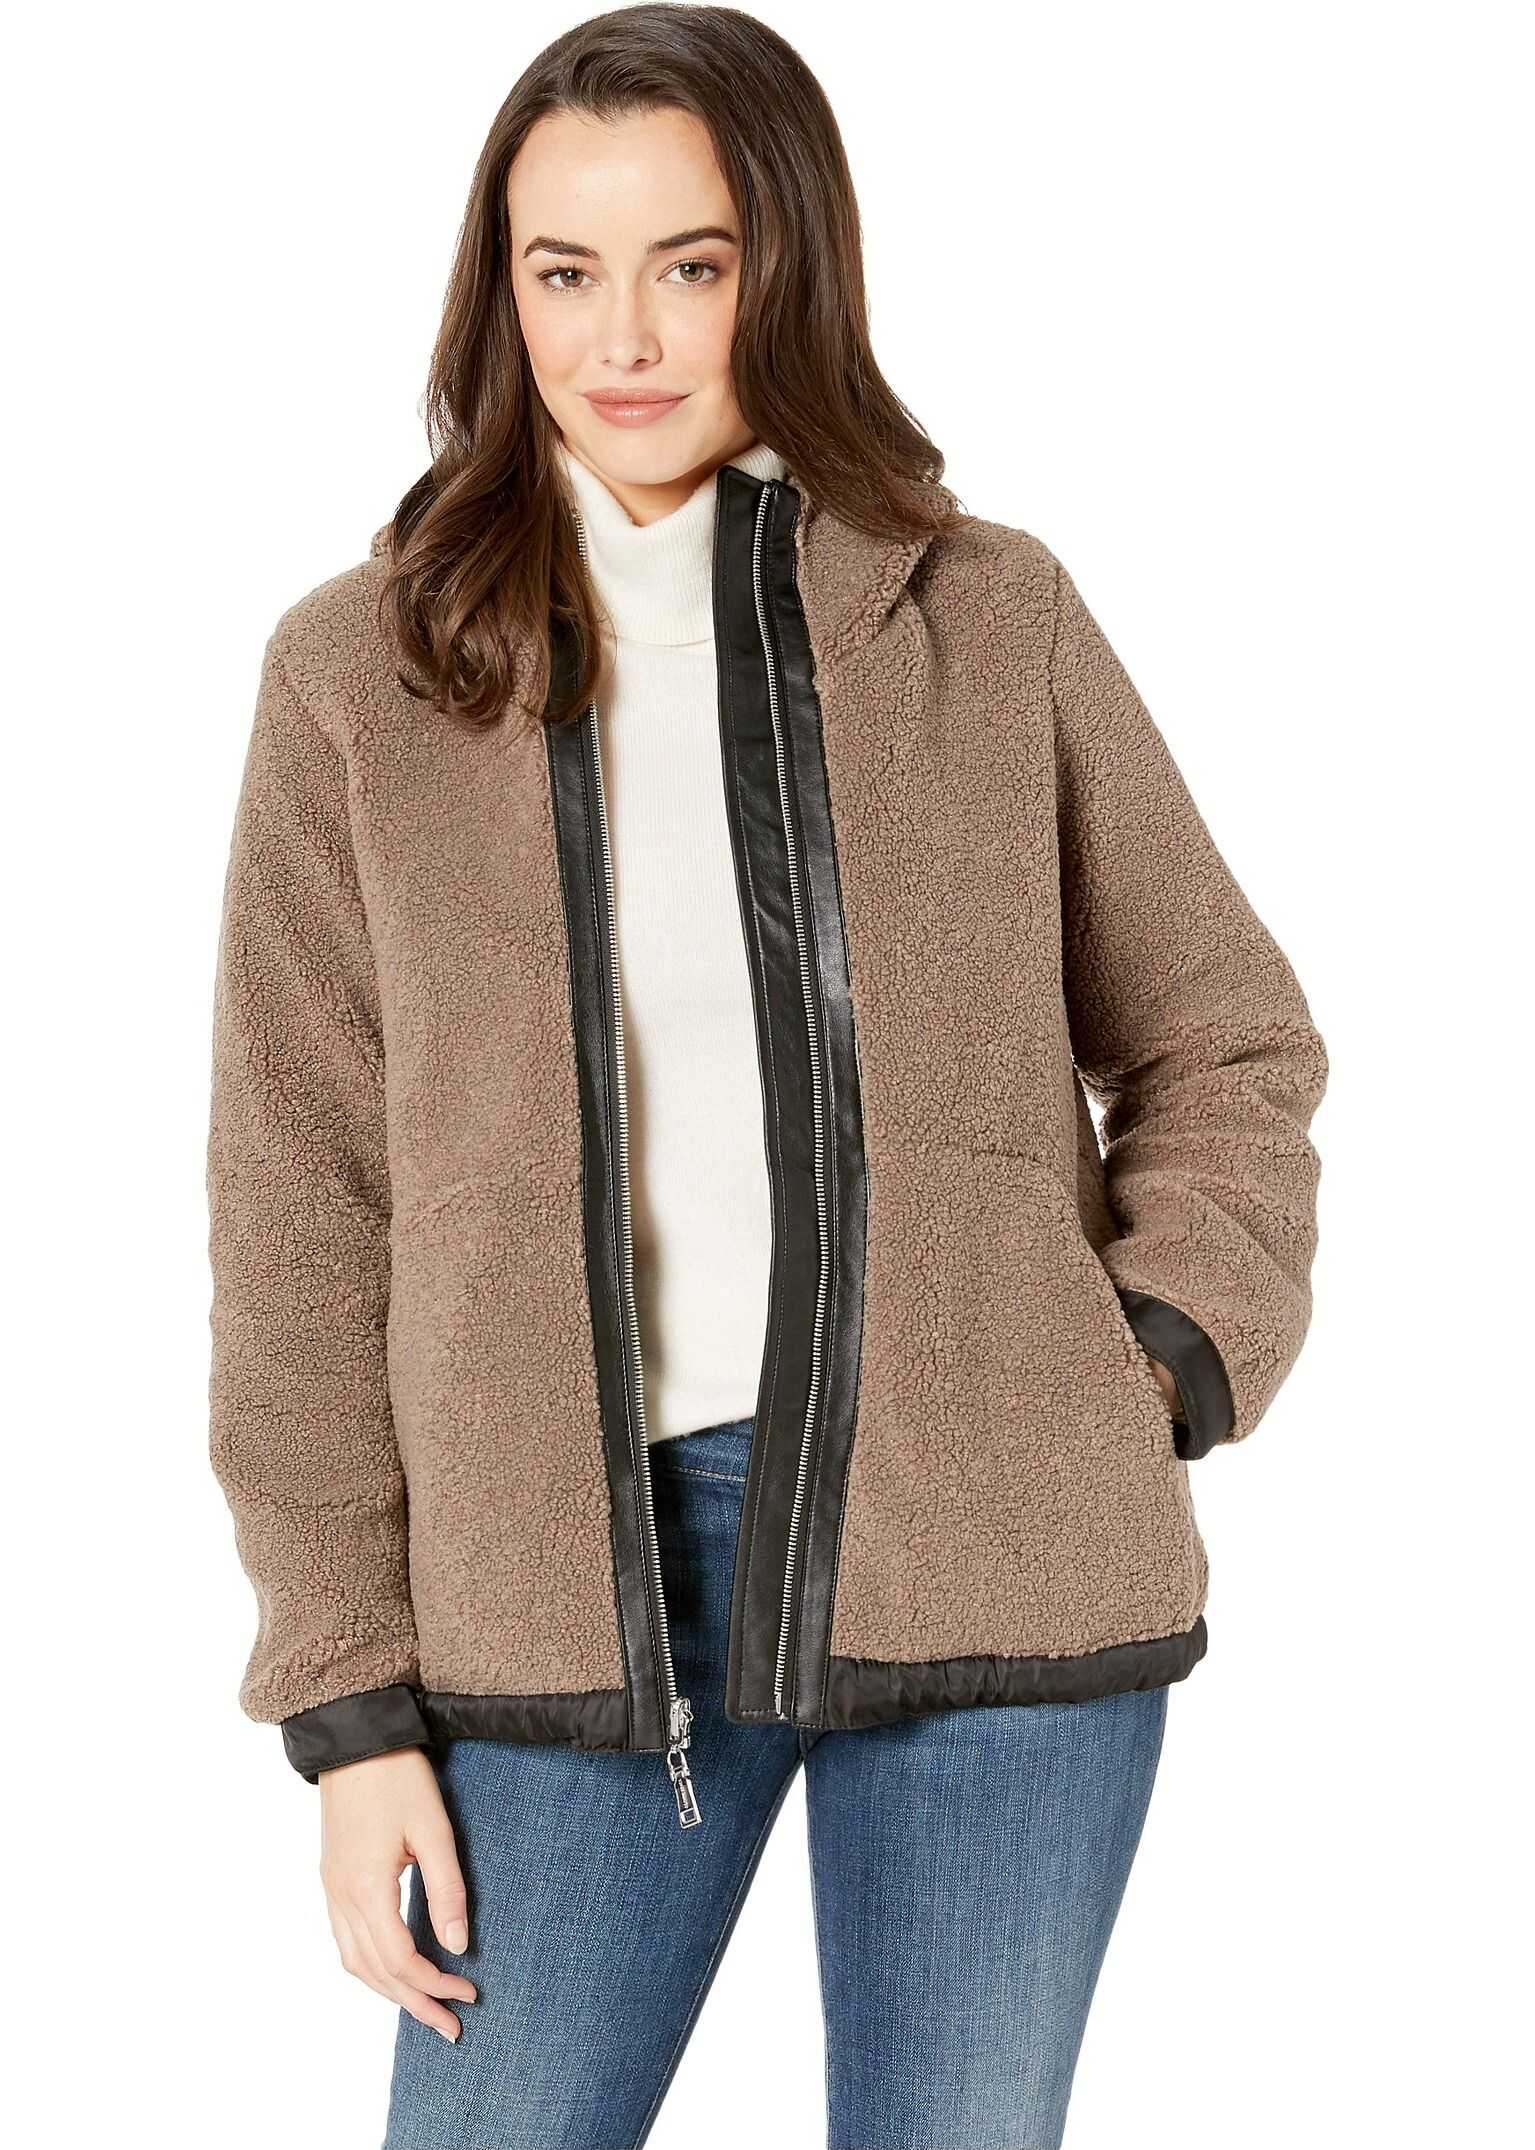 Vince Camuto Hooded Faux Shearling Jacket R8971 Mink